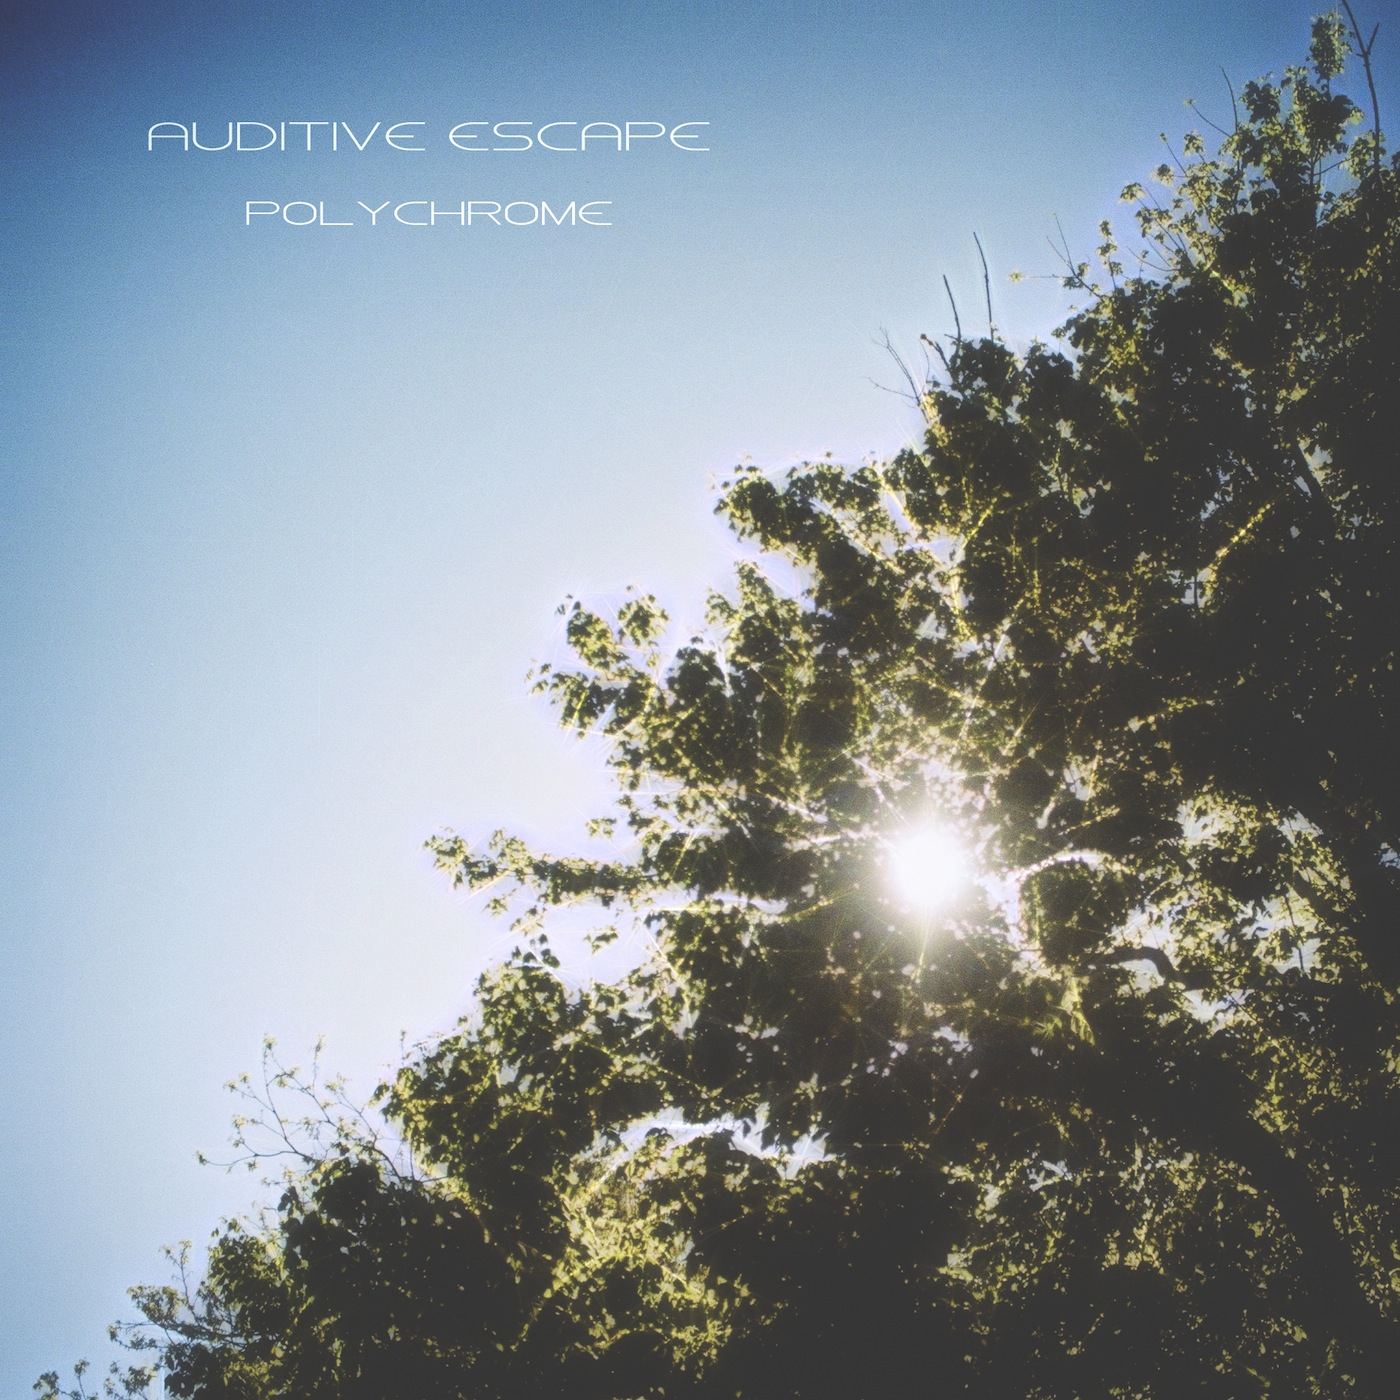 Polychrome (LP) – Auditive Escape